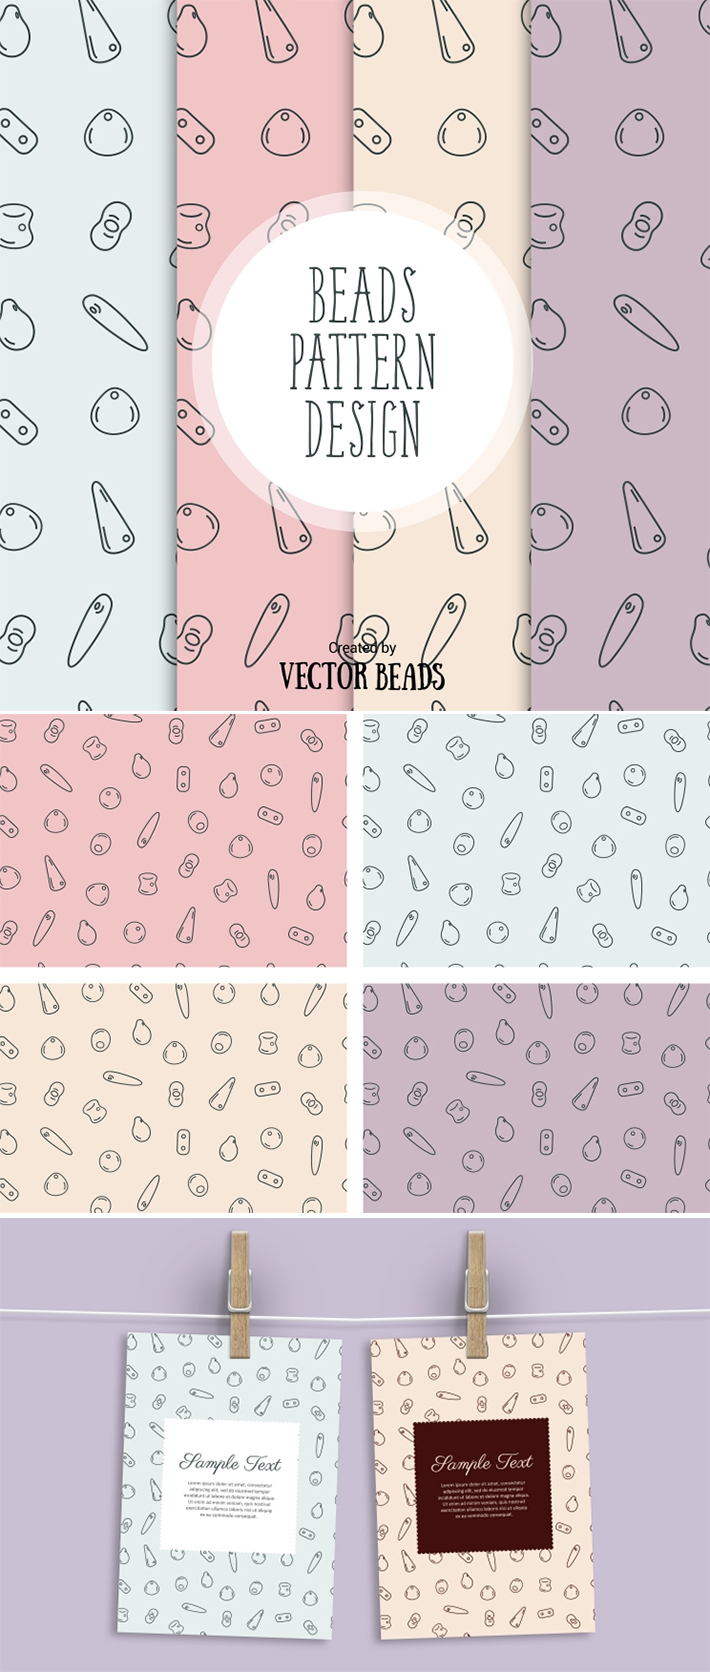 Awesome Vector Pattern Design